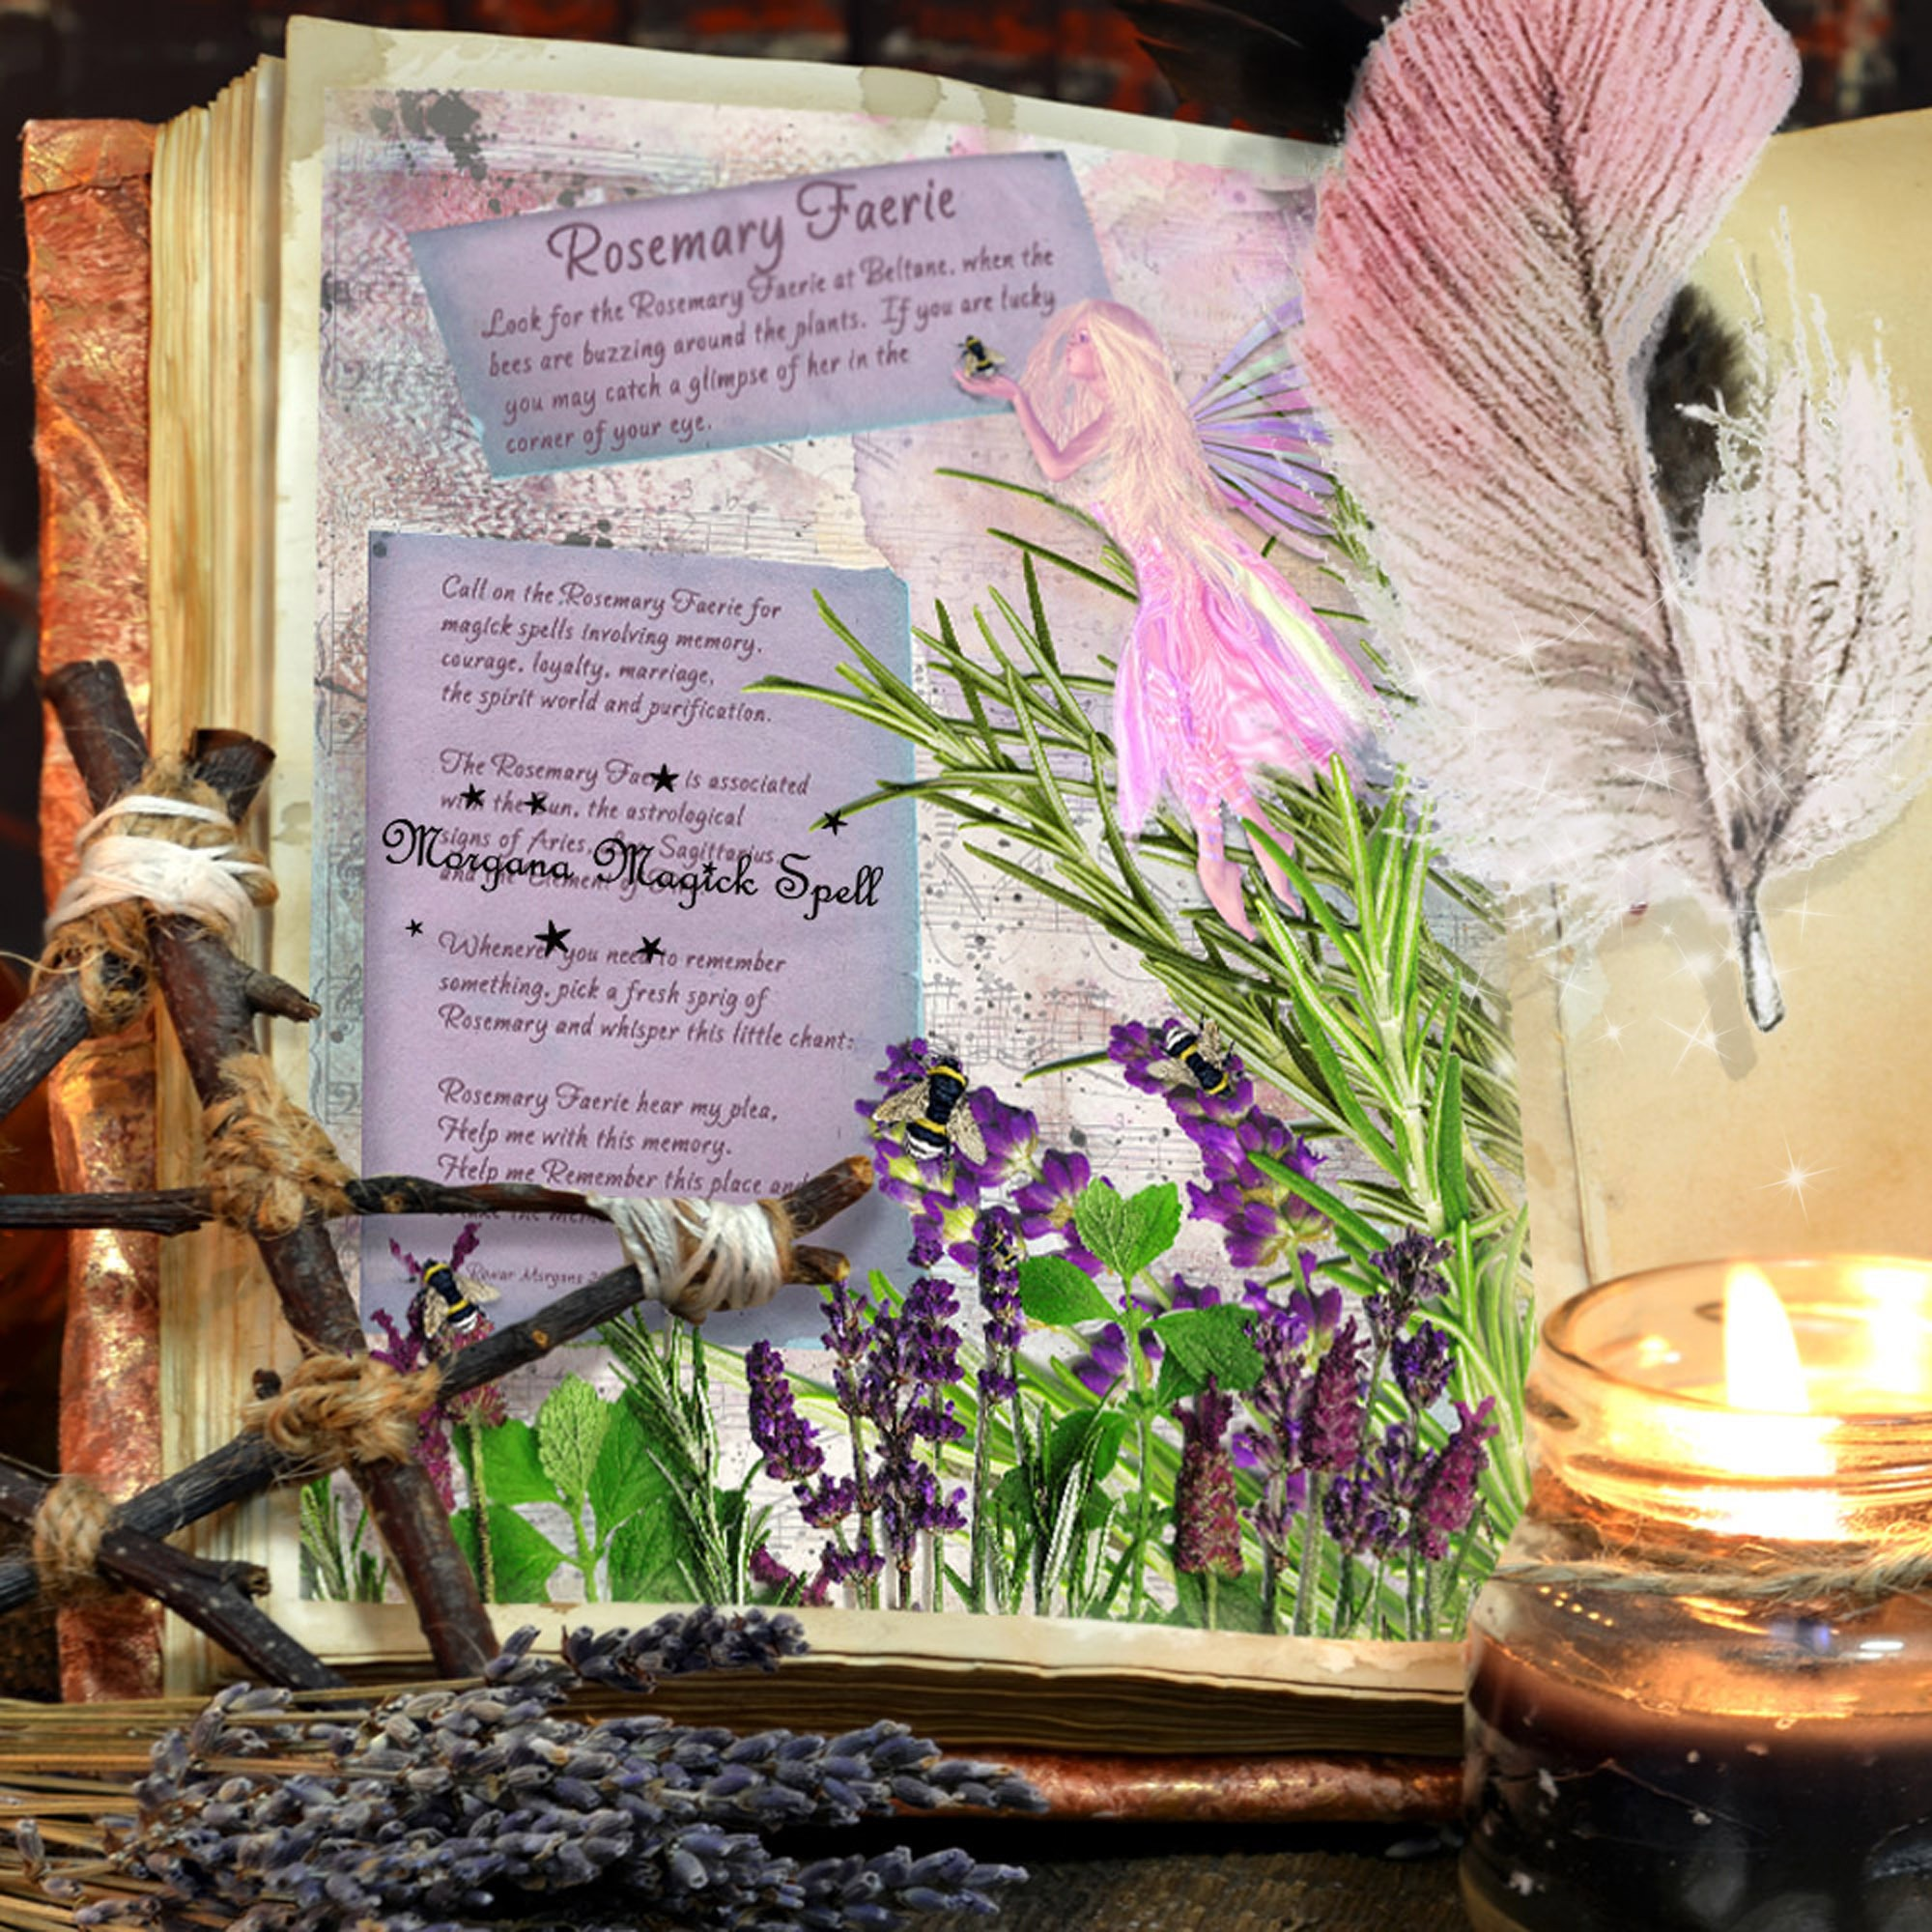 The ROSEMARY FAERIE Realm of the Fey Lore